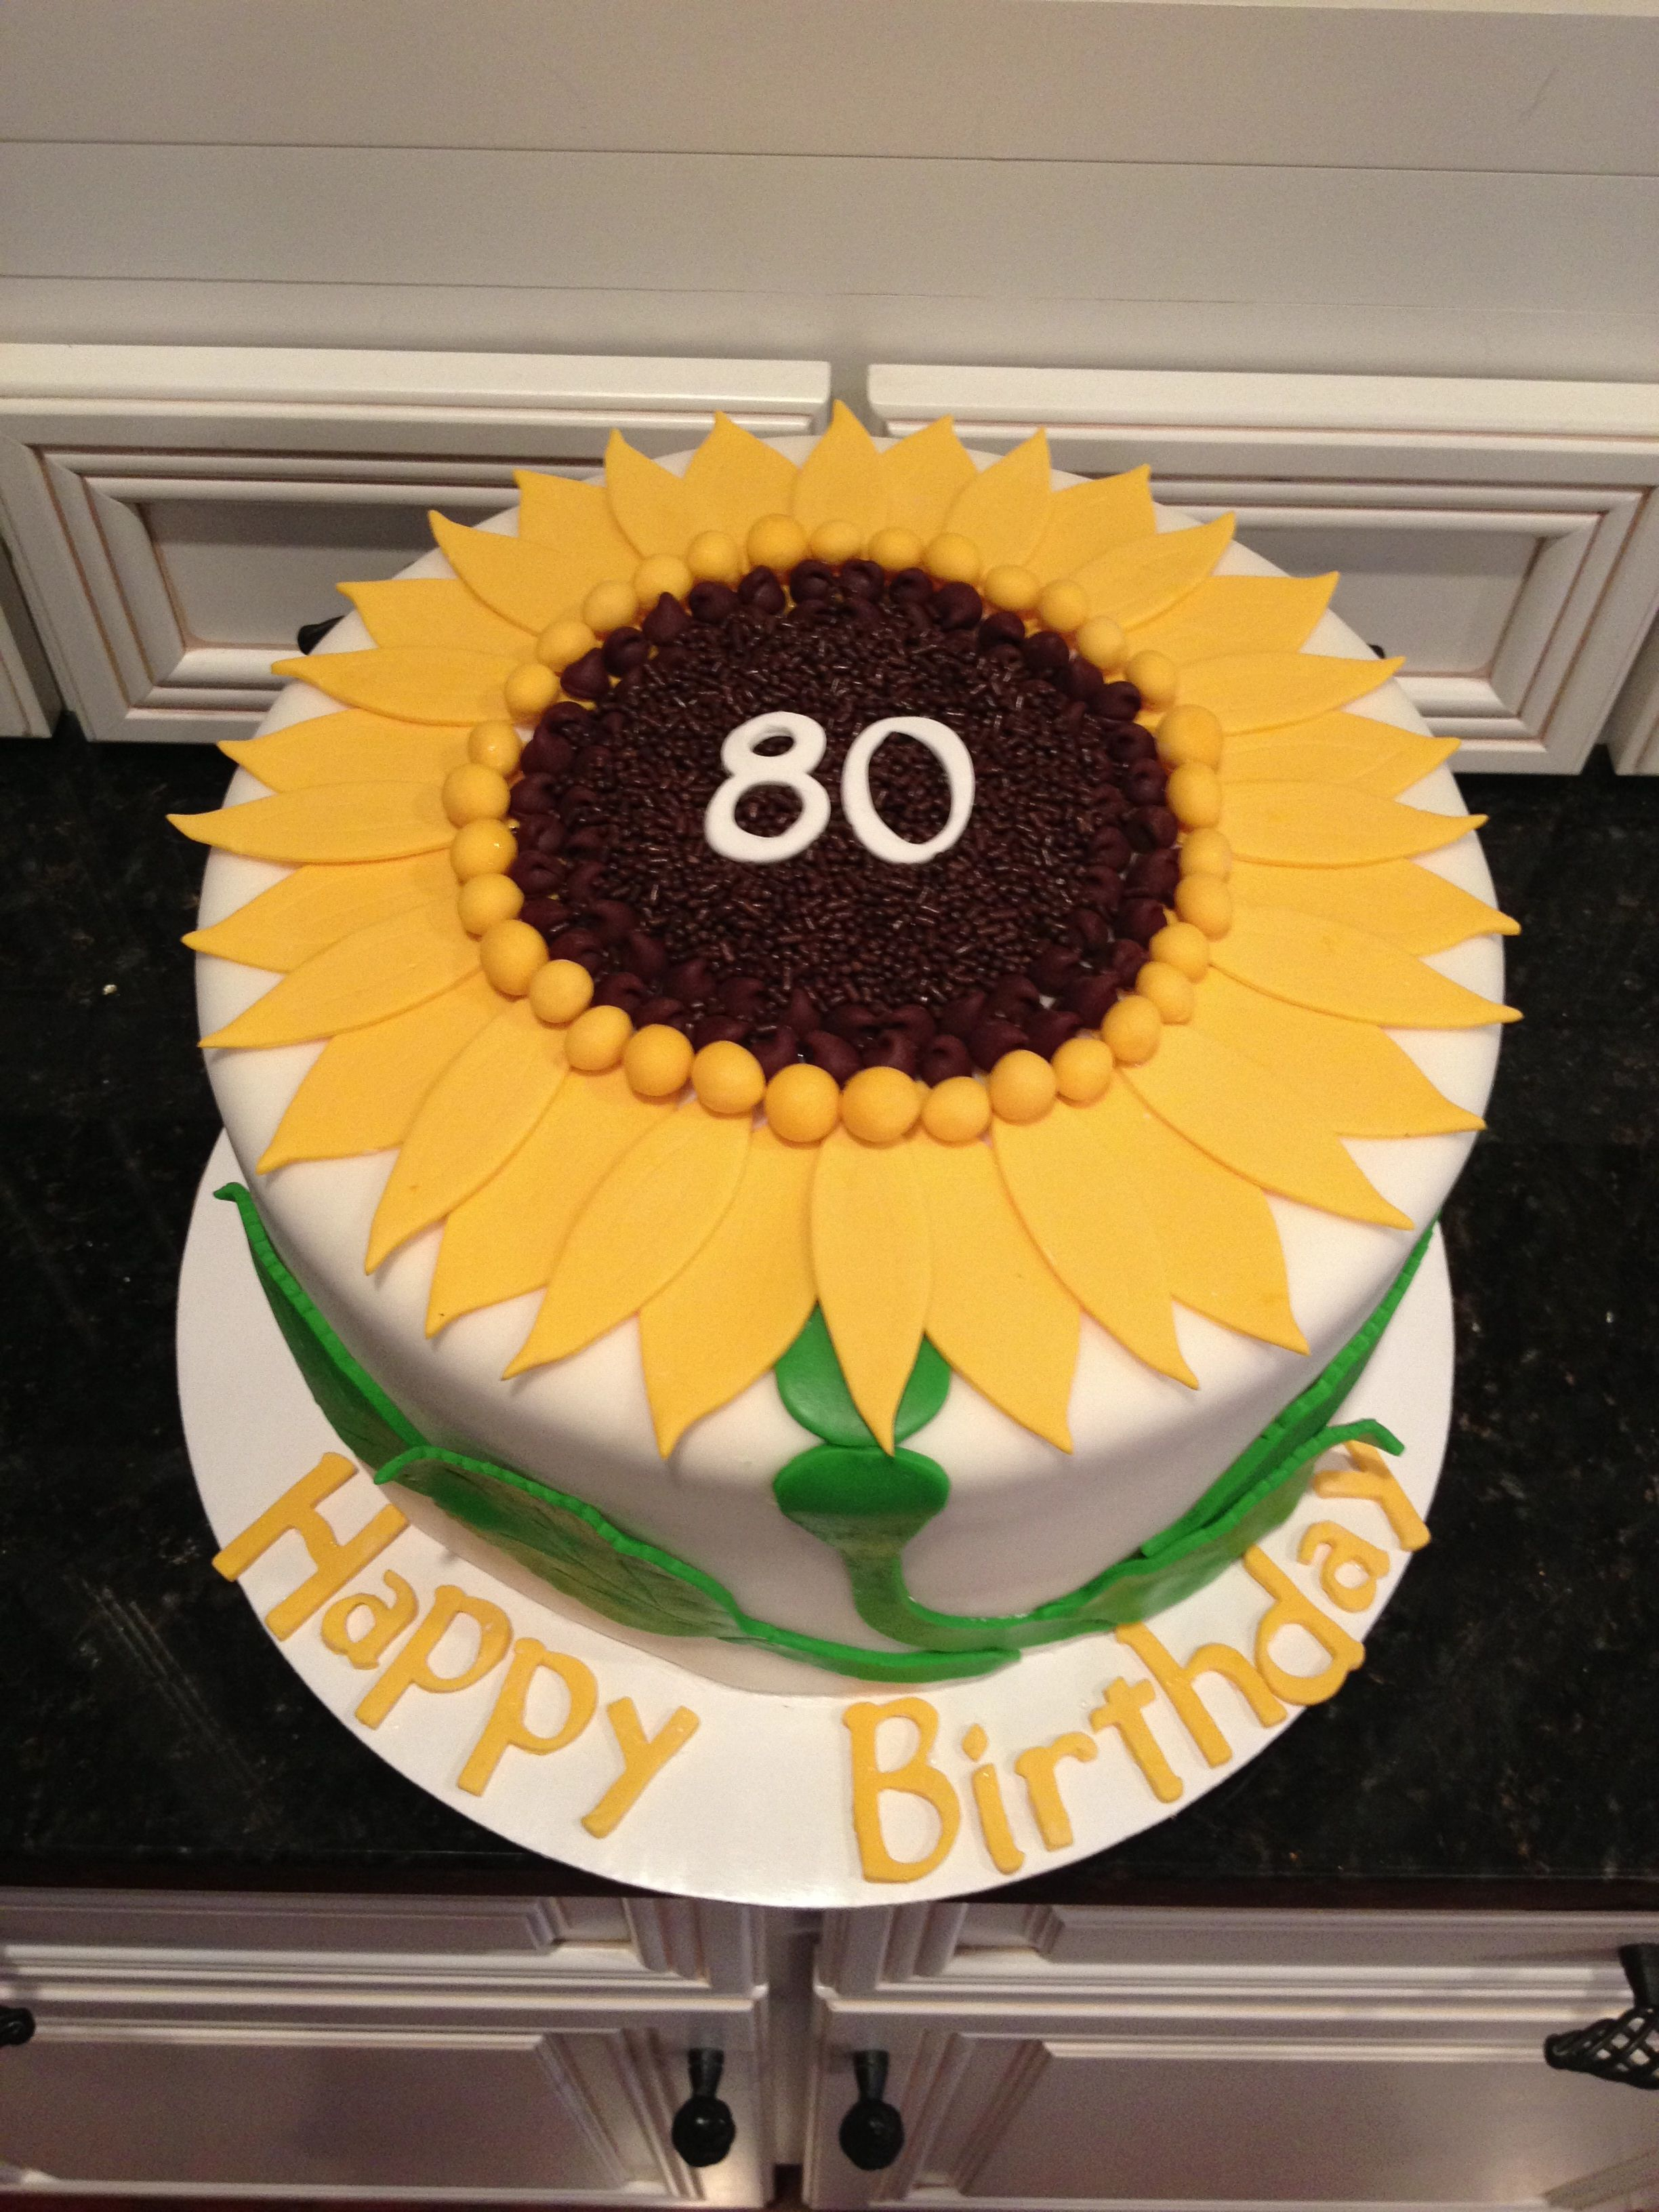 3264 In 30 Beautiful Picture Of Sunflower Birthday Cake For 80 Year Old